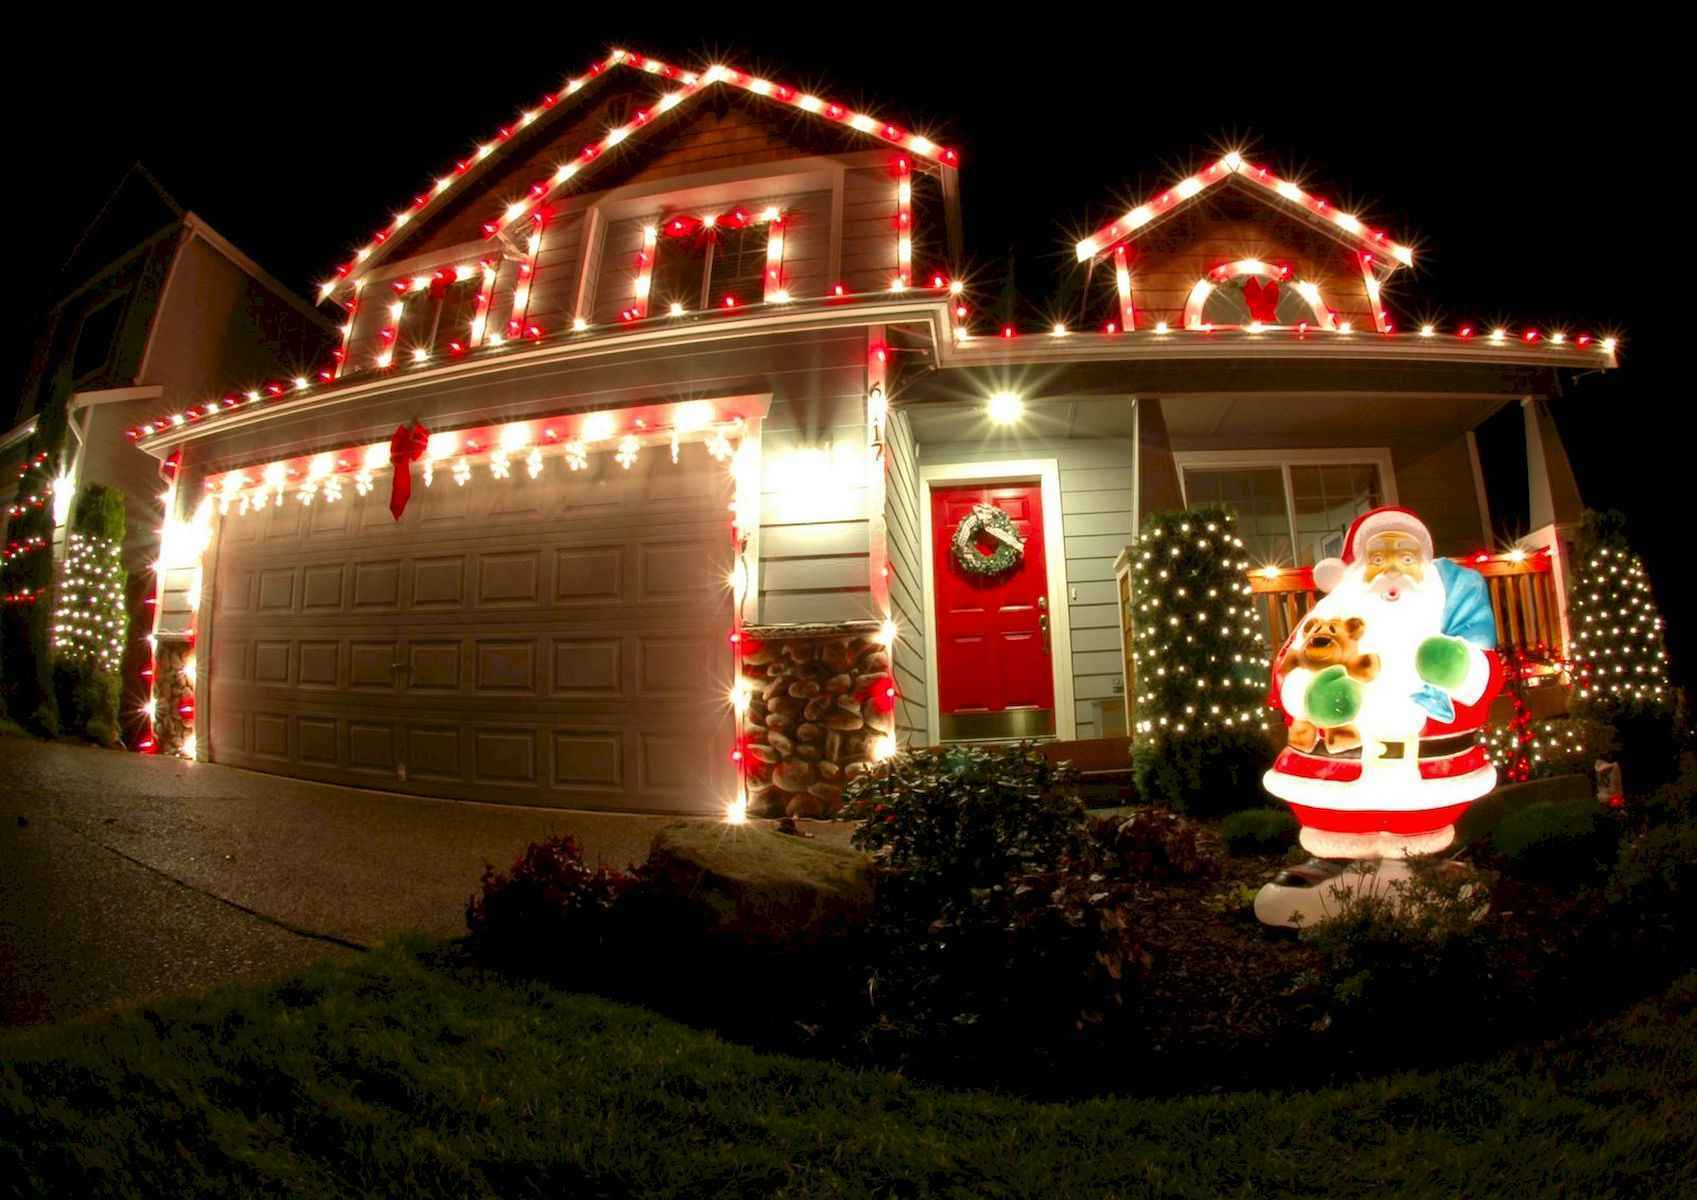 50 stunning outdoor christmas decor ideas and makeover (28)